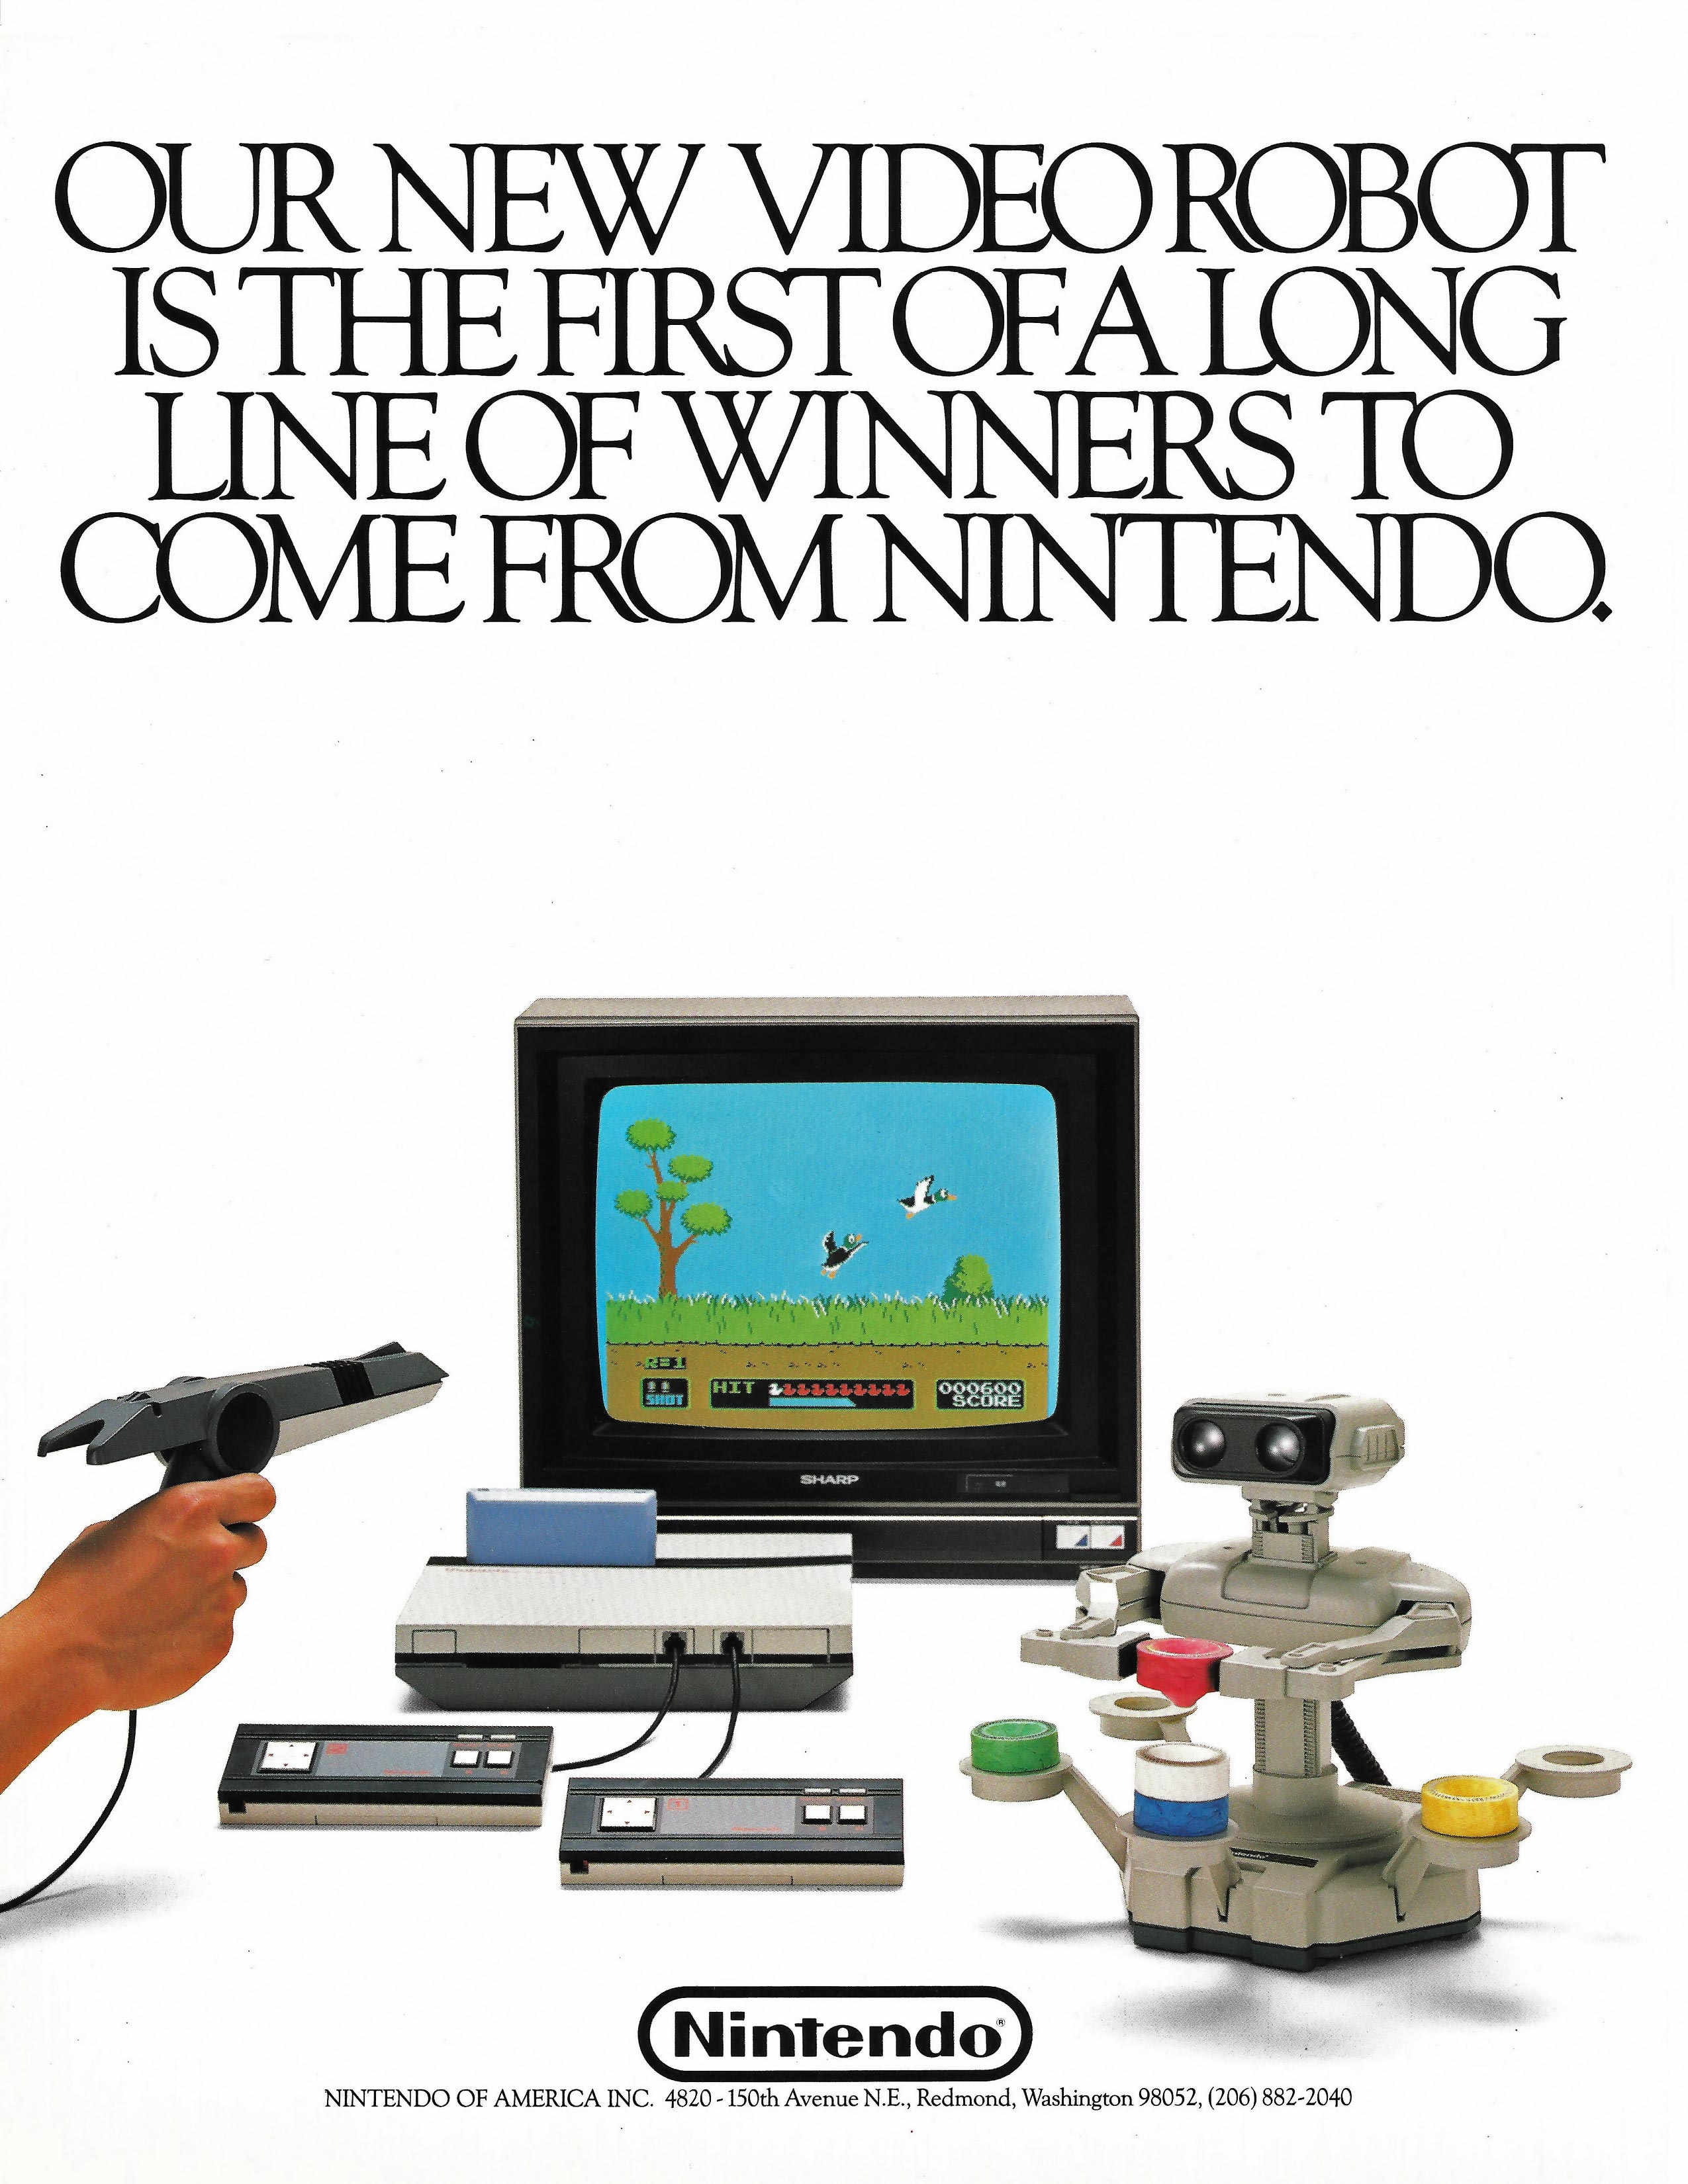 AVS, a video game system by Nintendo